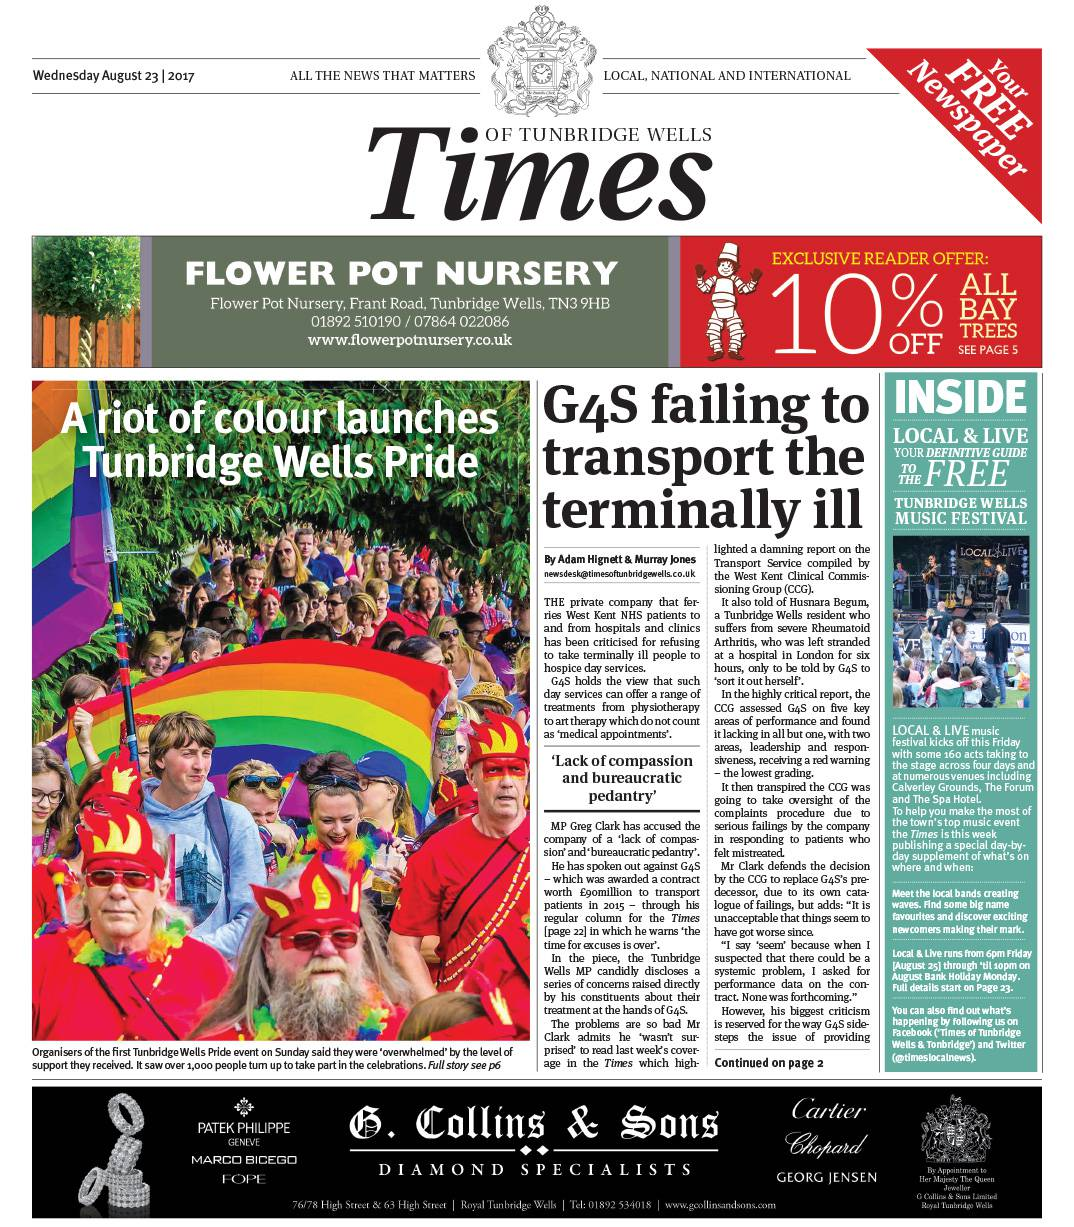 Read the Times of Tunbridge Wells 23rd August 2017